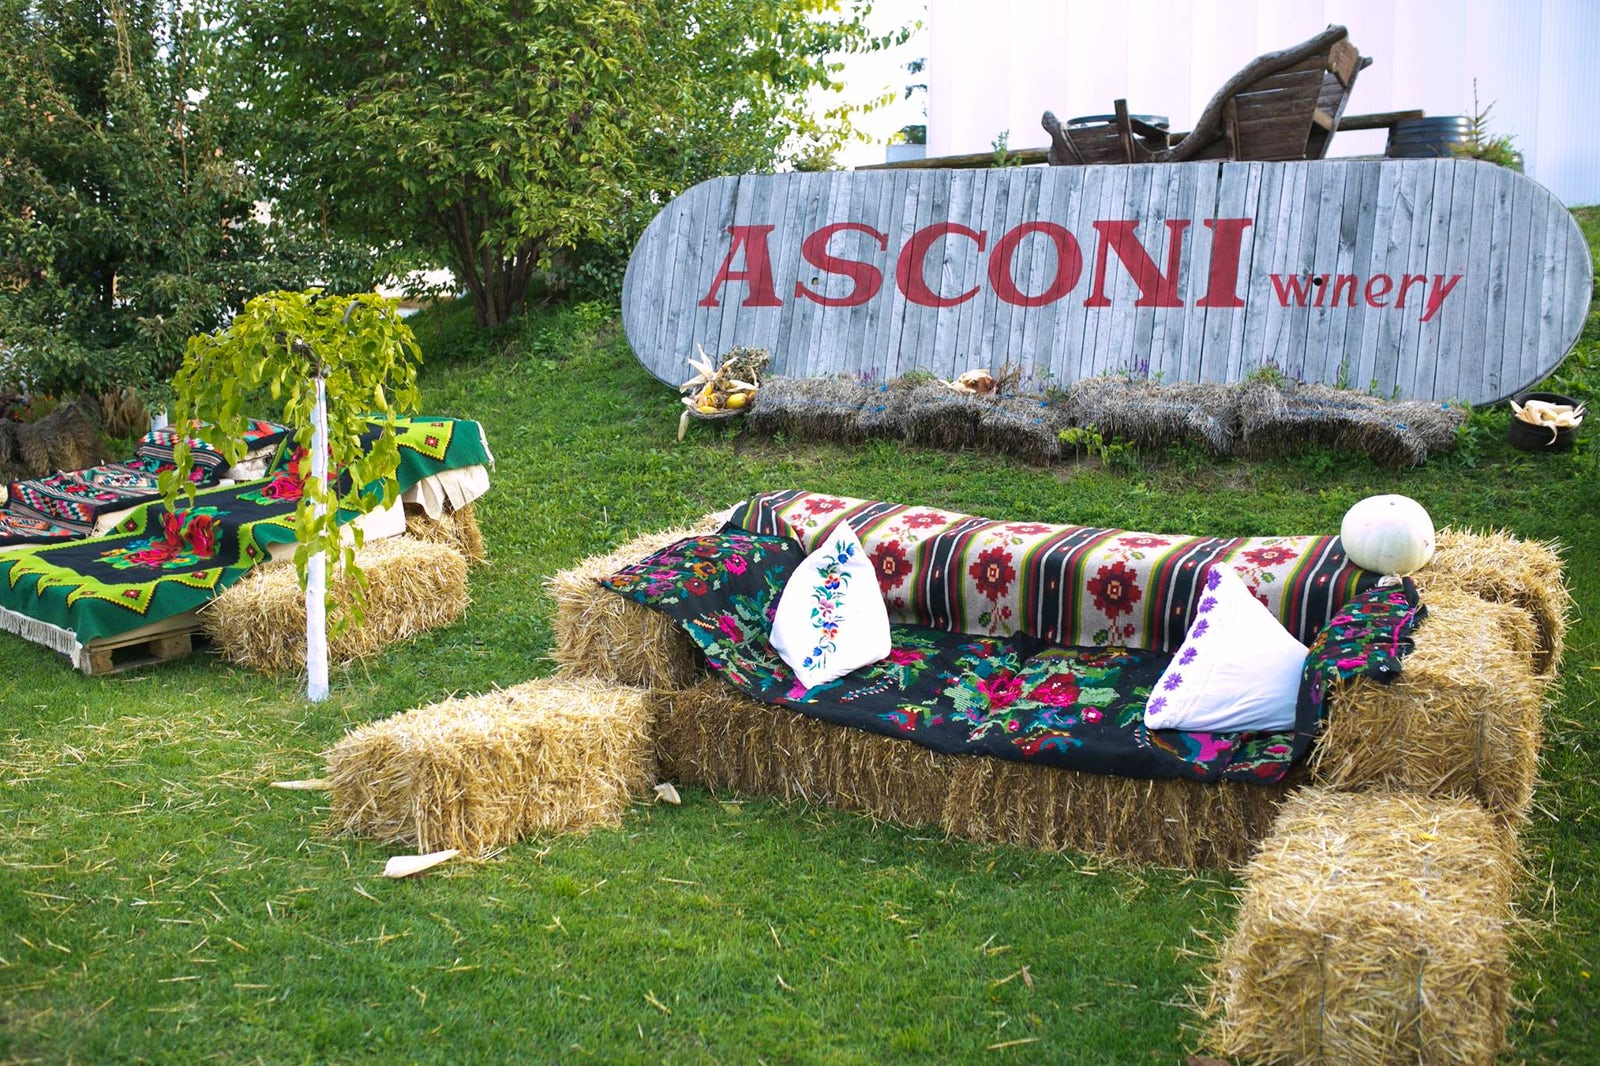 Cover picture © Credits to Asconi Winery